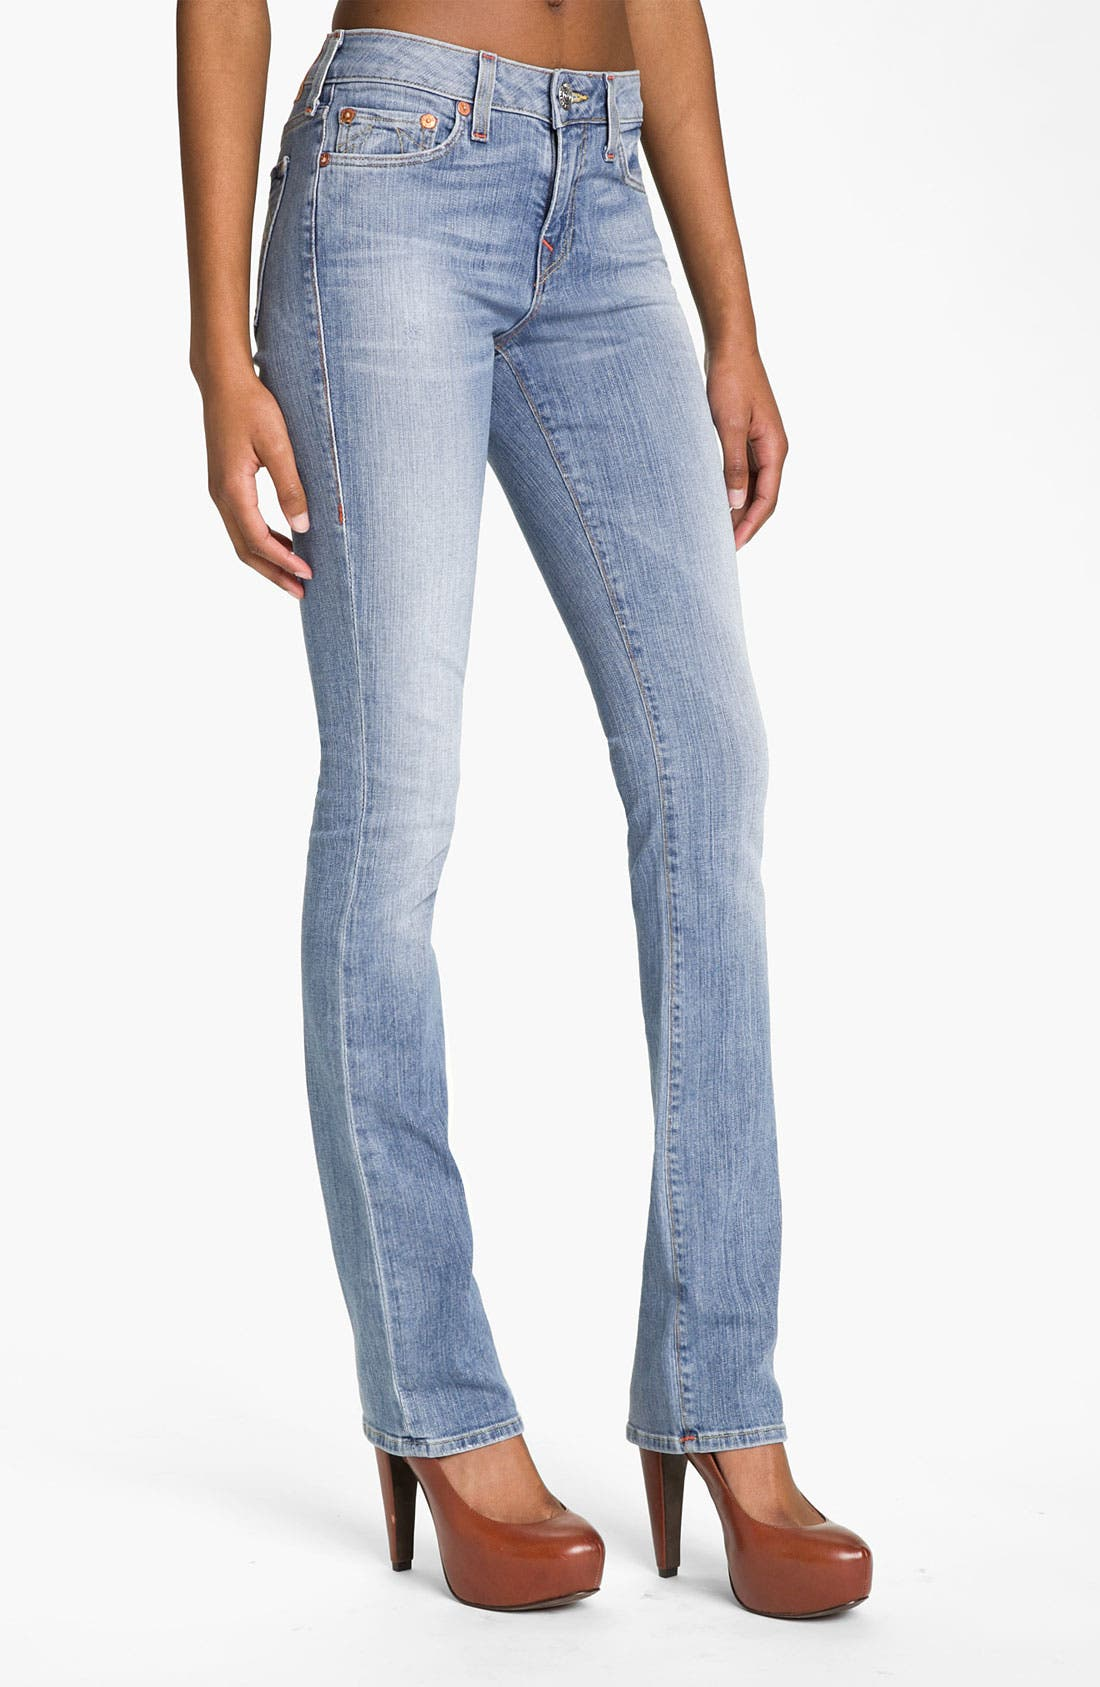 Main Image - True Religion Brand Jeans 'Stacey' Straight Leg Stretch Jeans (Drifter)